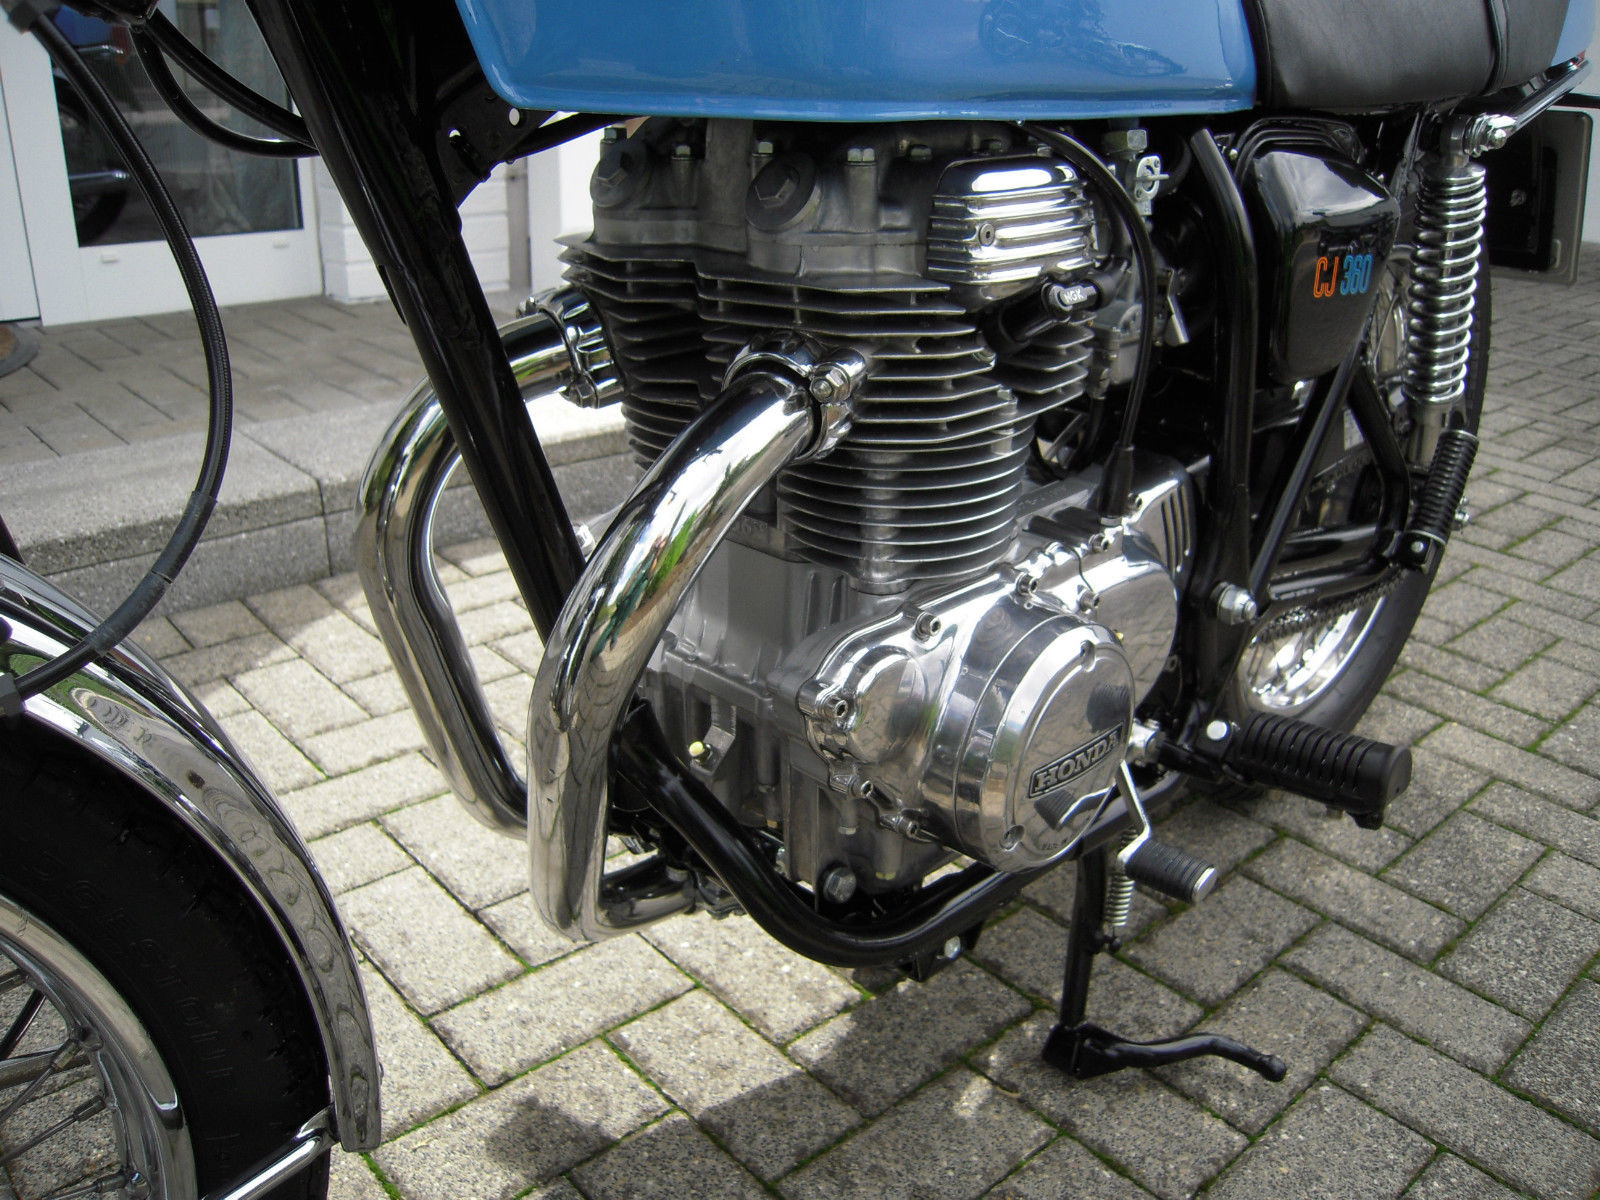 Honda CB360 - 1979 - Engine and Gearbox, Motor and Transmission, Exhaust Pipes and Frame Down Tube.